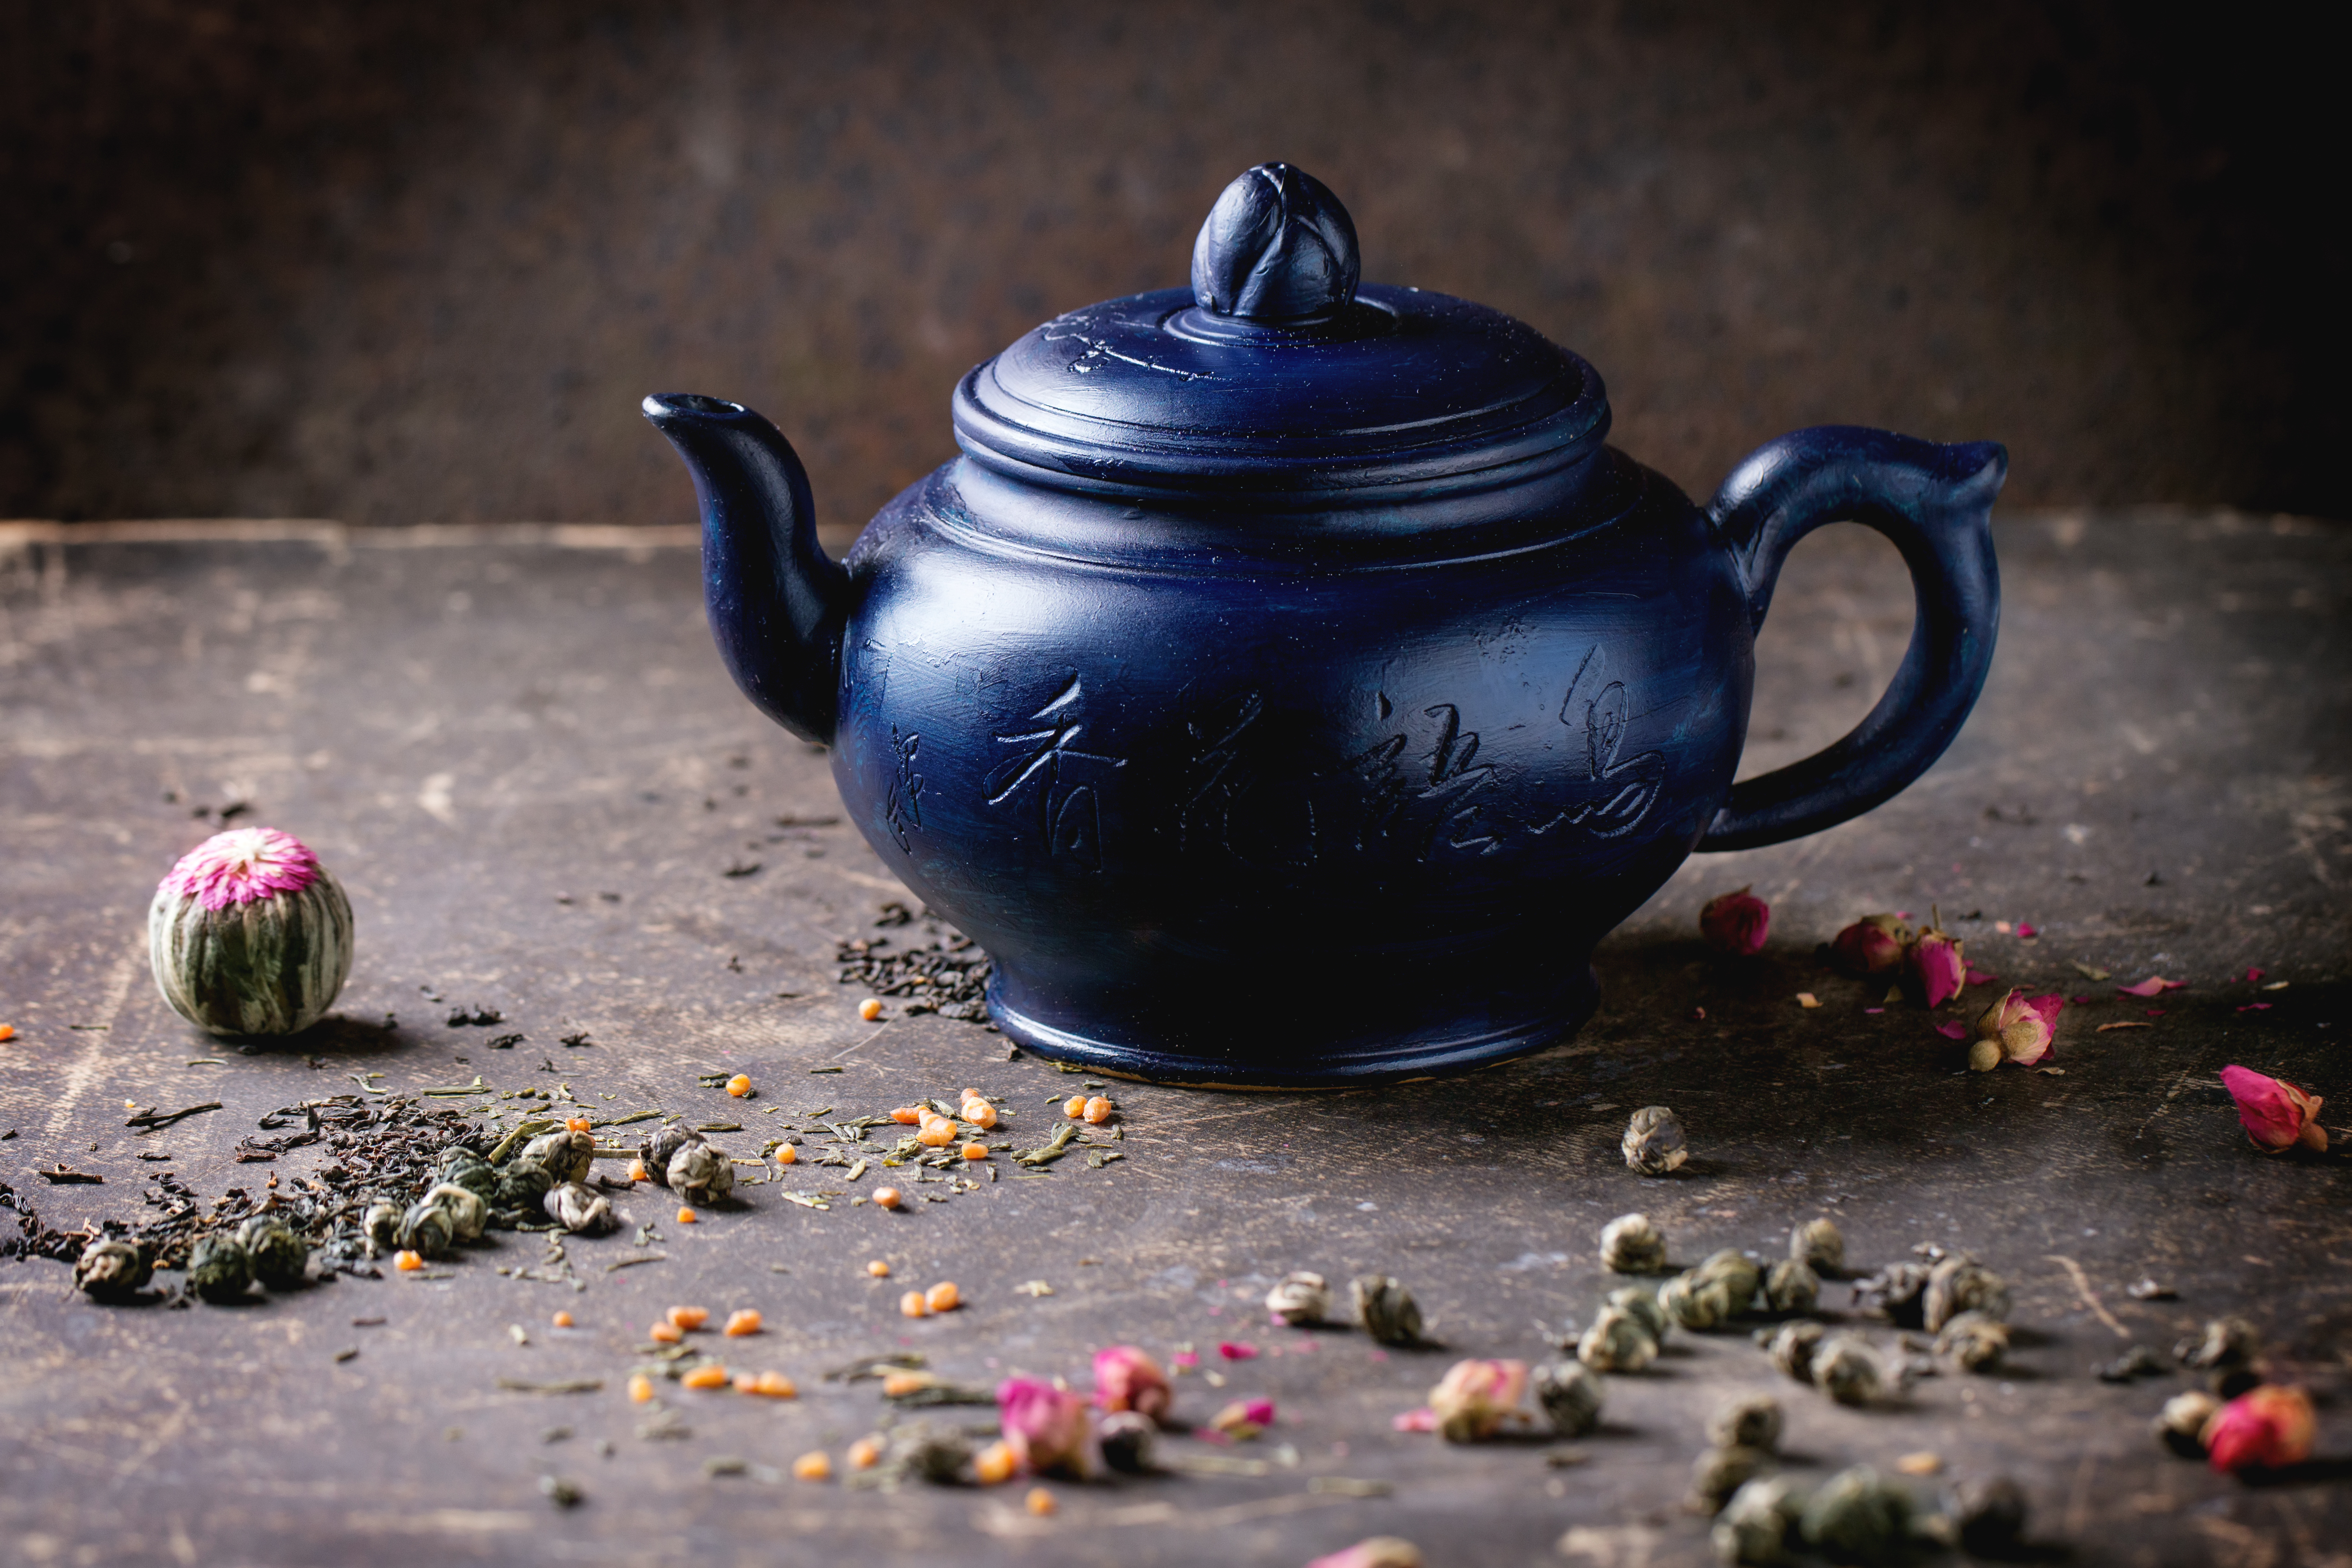 Blue ceramic teapot served with black and green tea lives over dark background